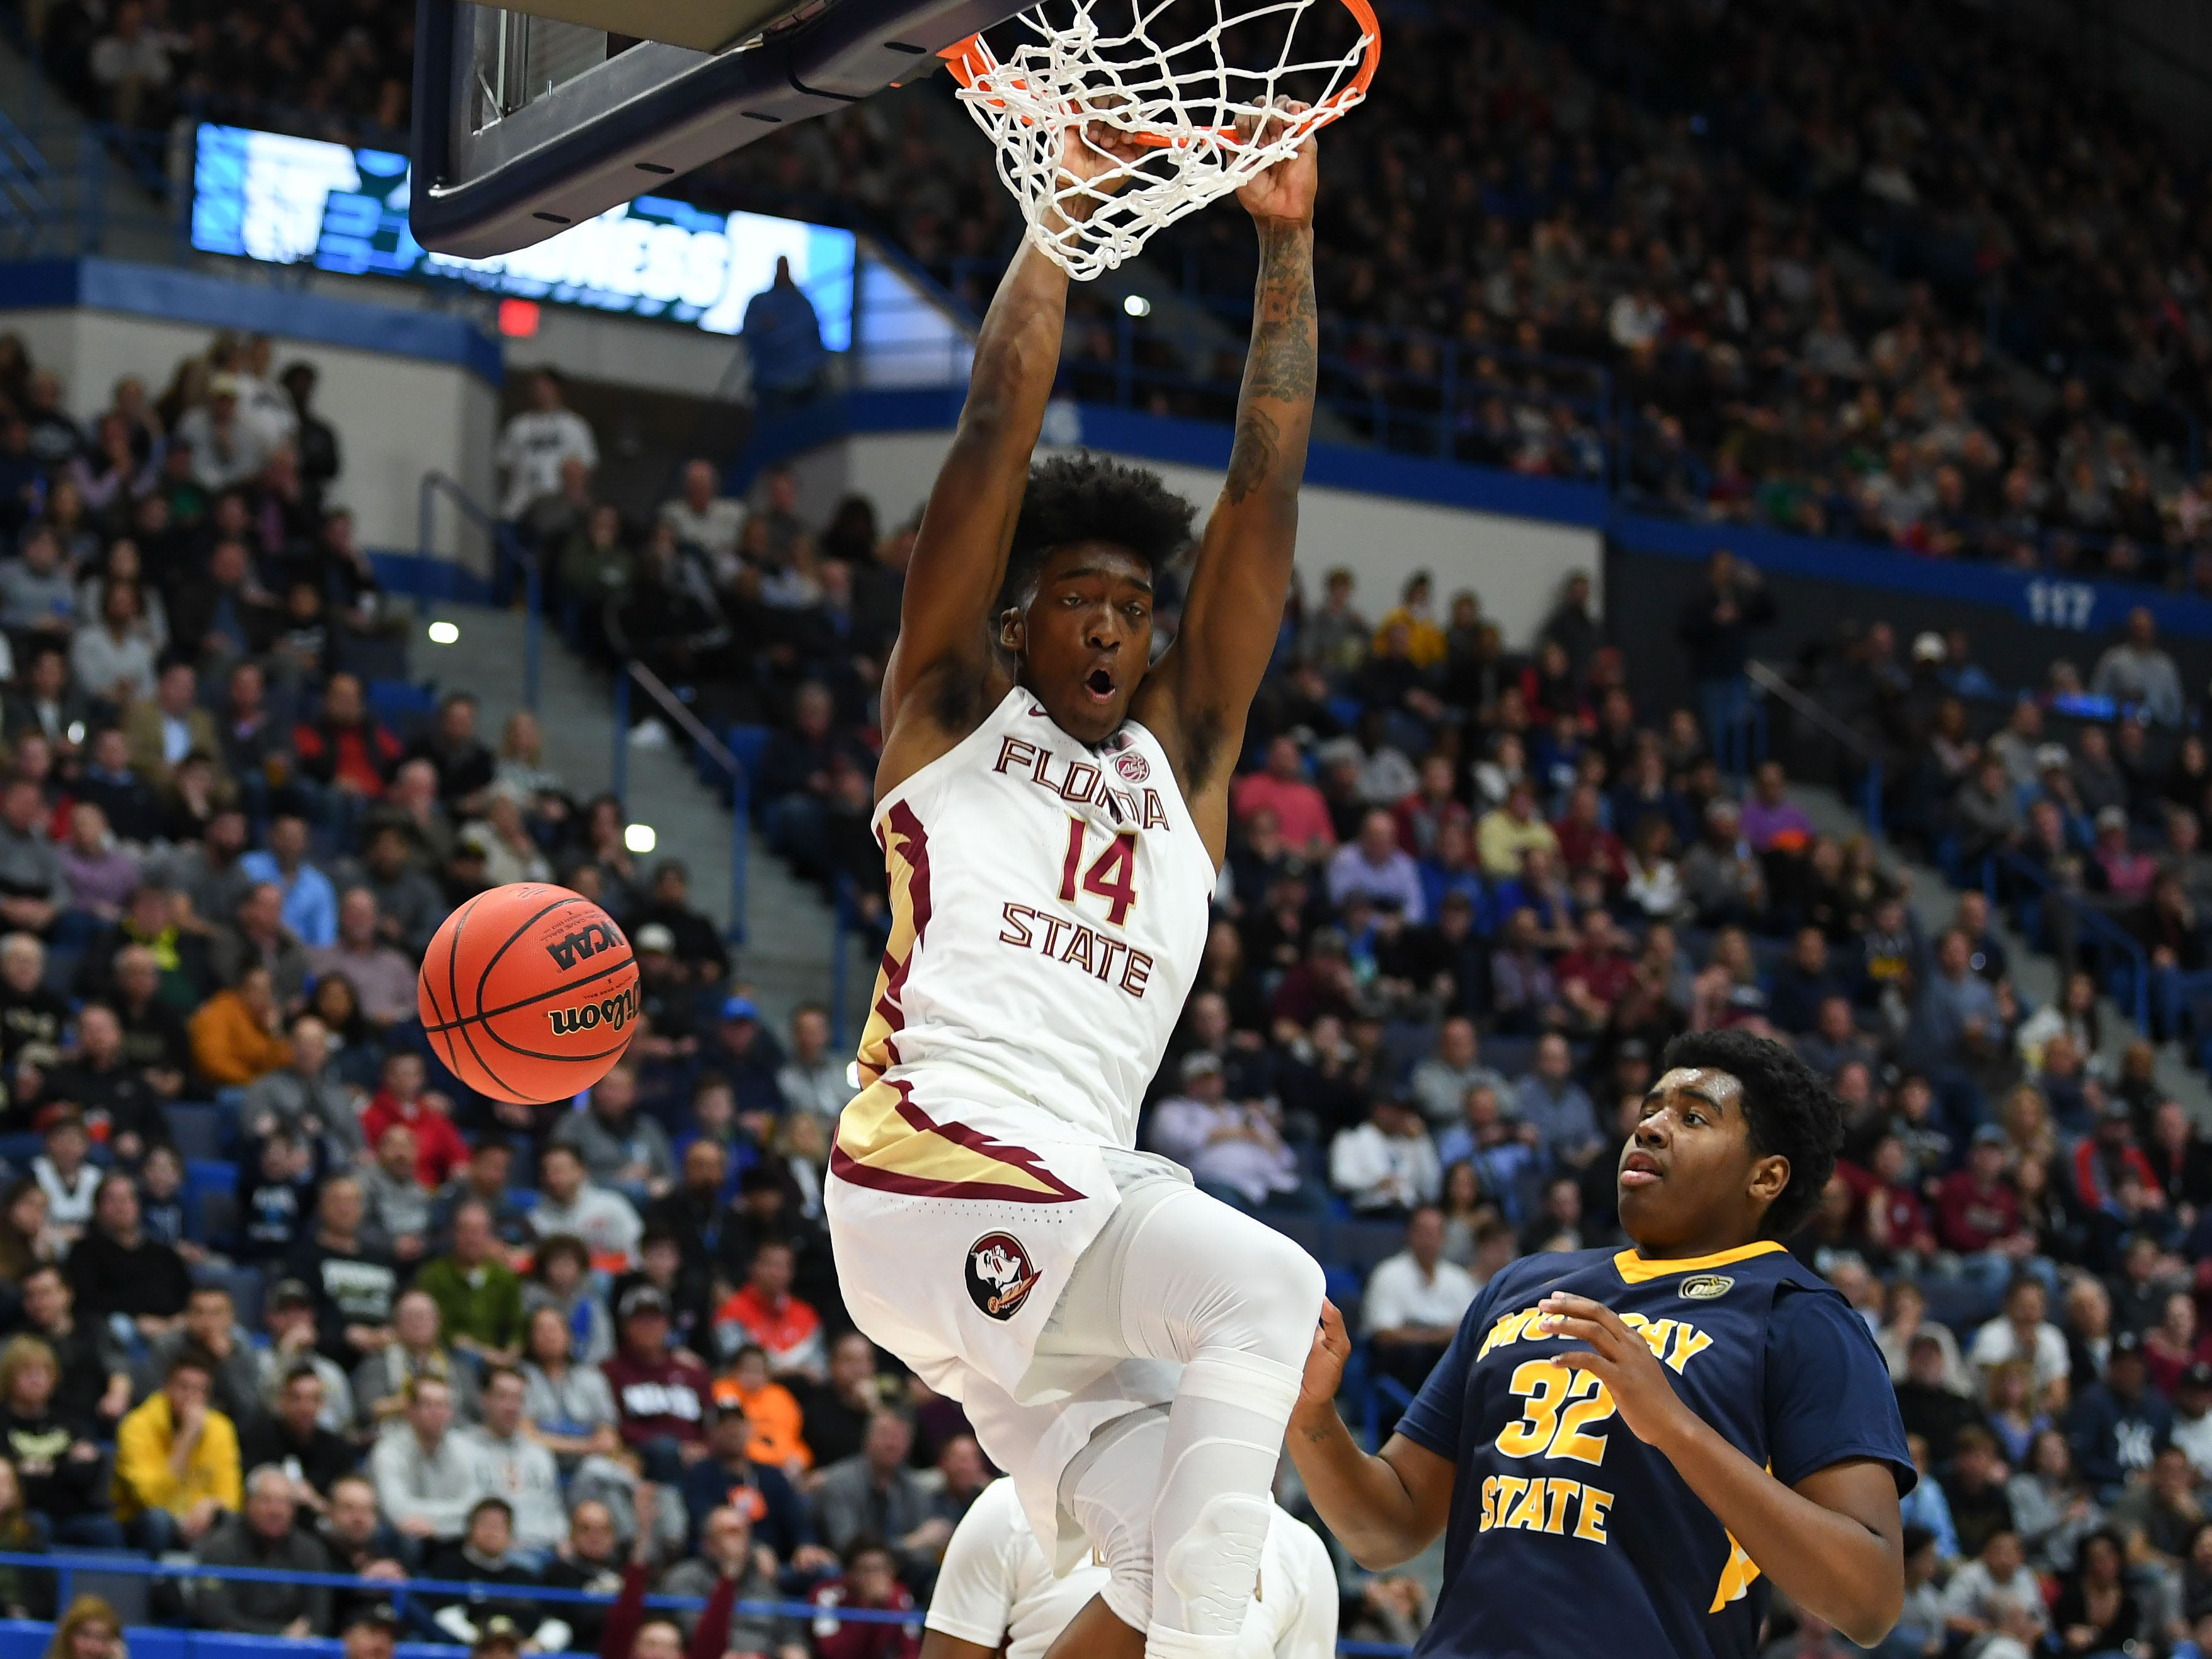 Florida State guard Terance Mann dunks against Murray State during the first half of a game in the second round of the 2019 NCAA Tournament at XL Center.